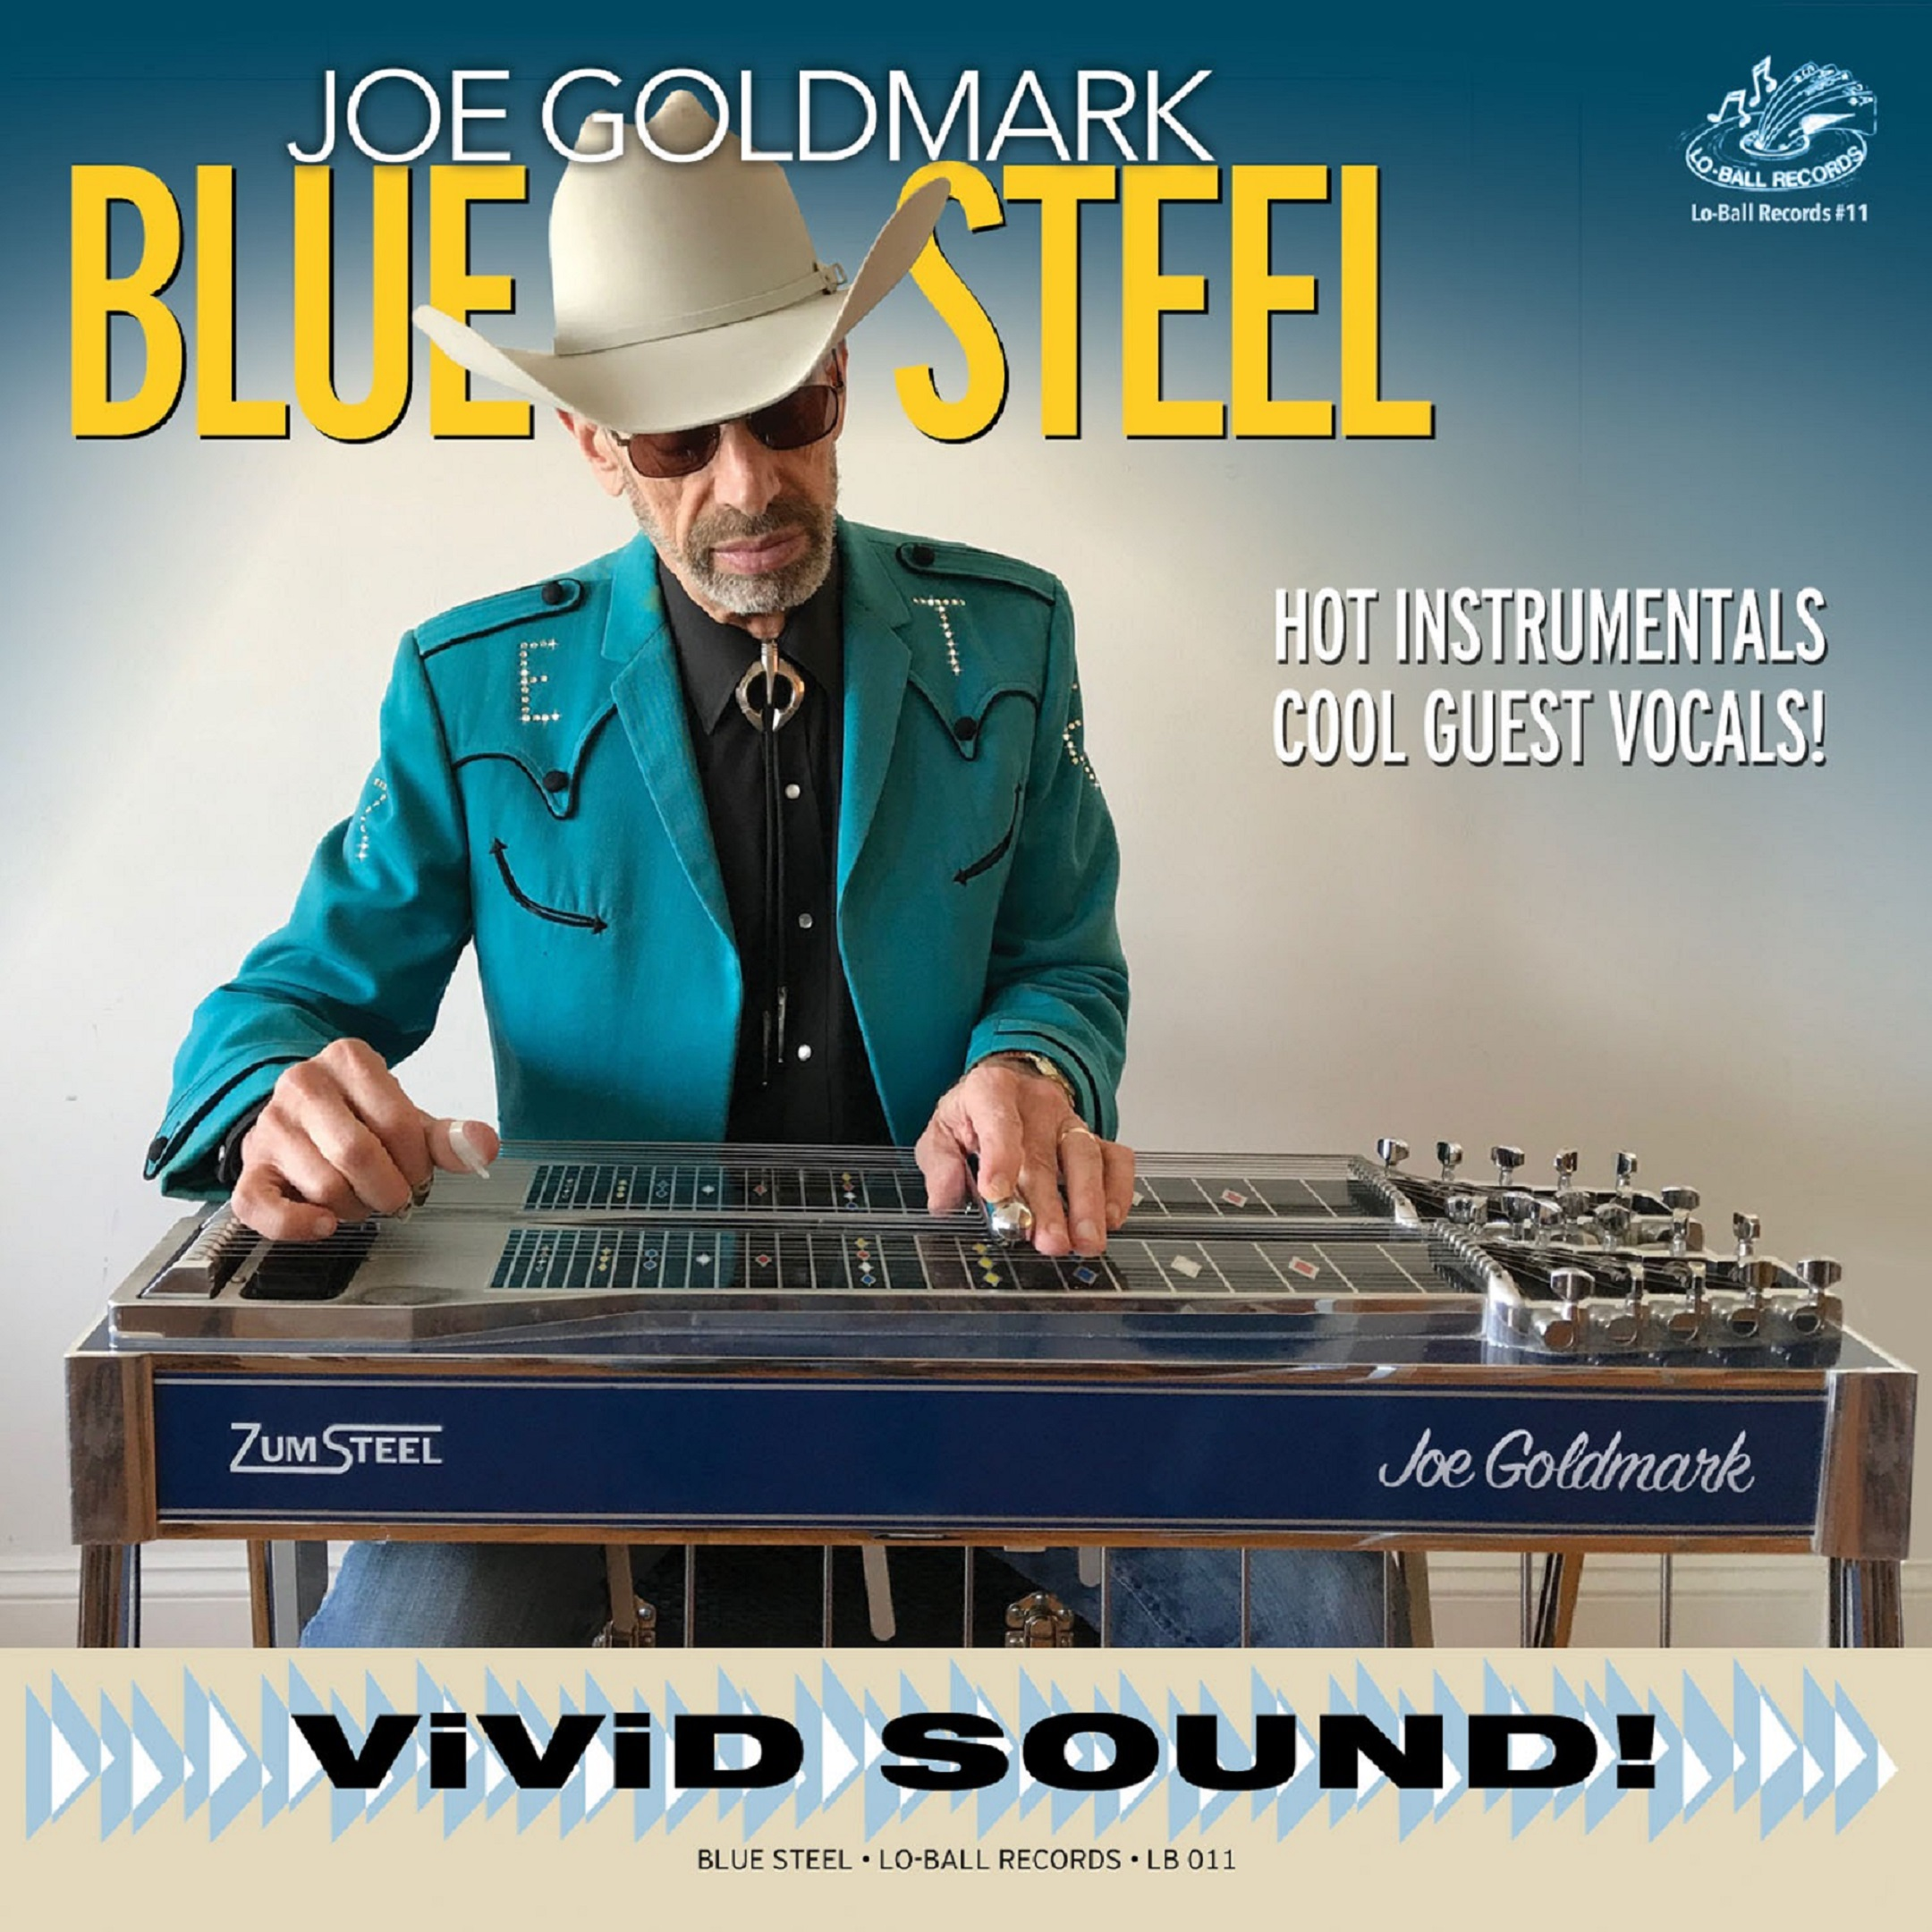 Joe Goldmark's New Album, 'Blue Steel' is Available Now